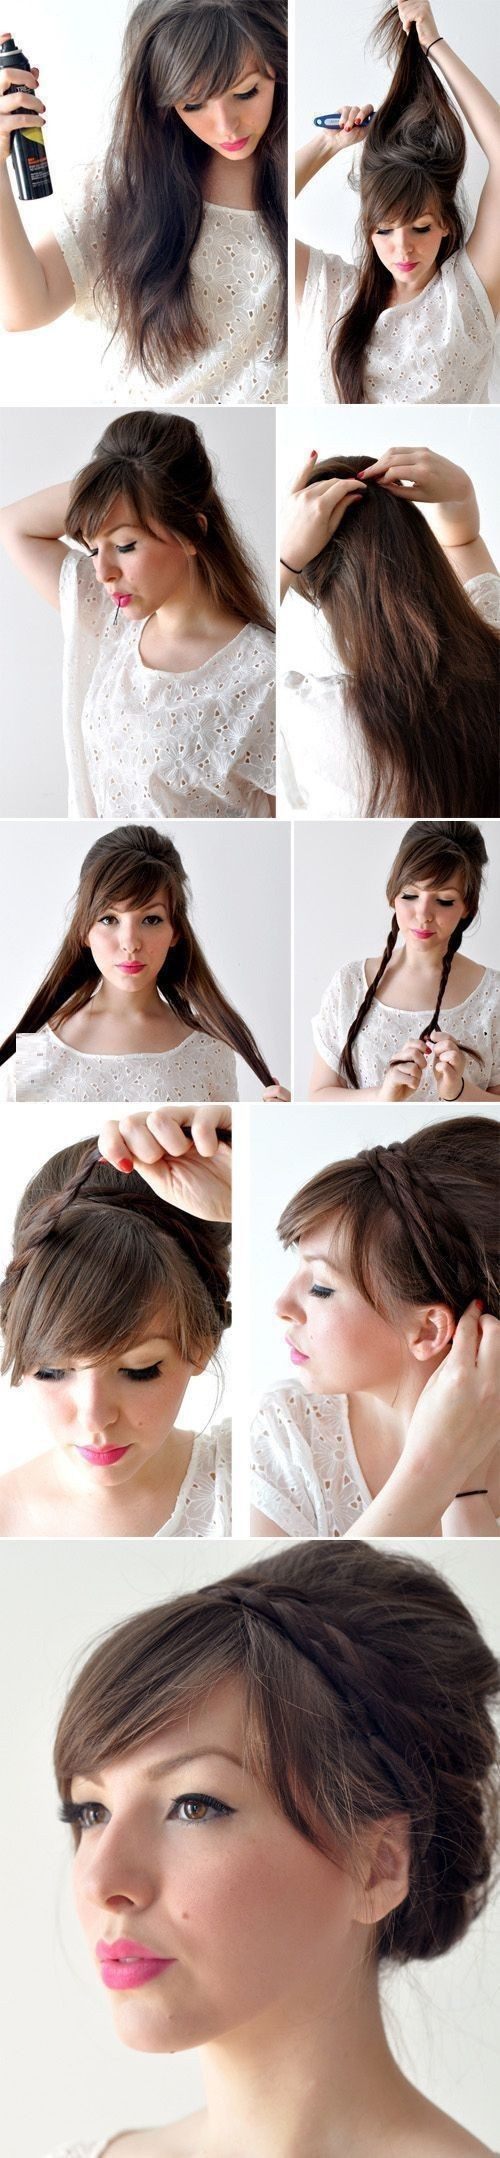 summer hair styles for hair best 25 hair ideas on 5818